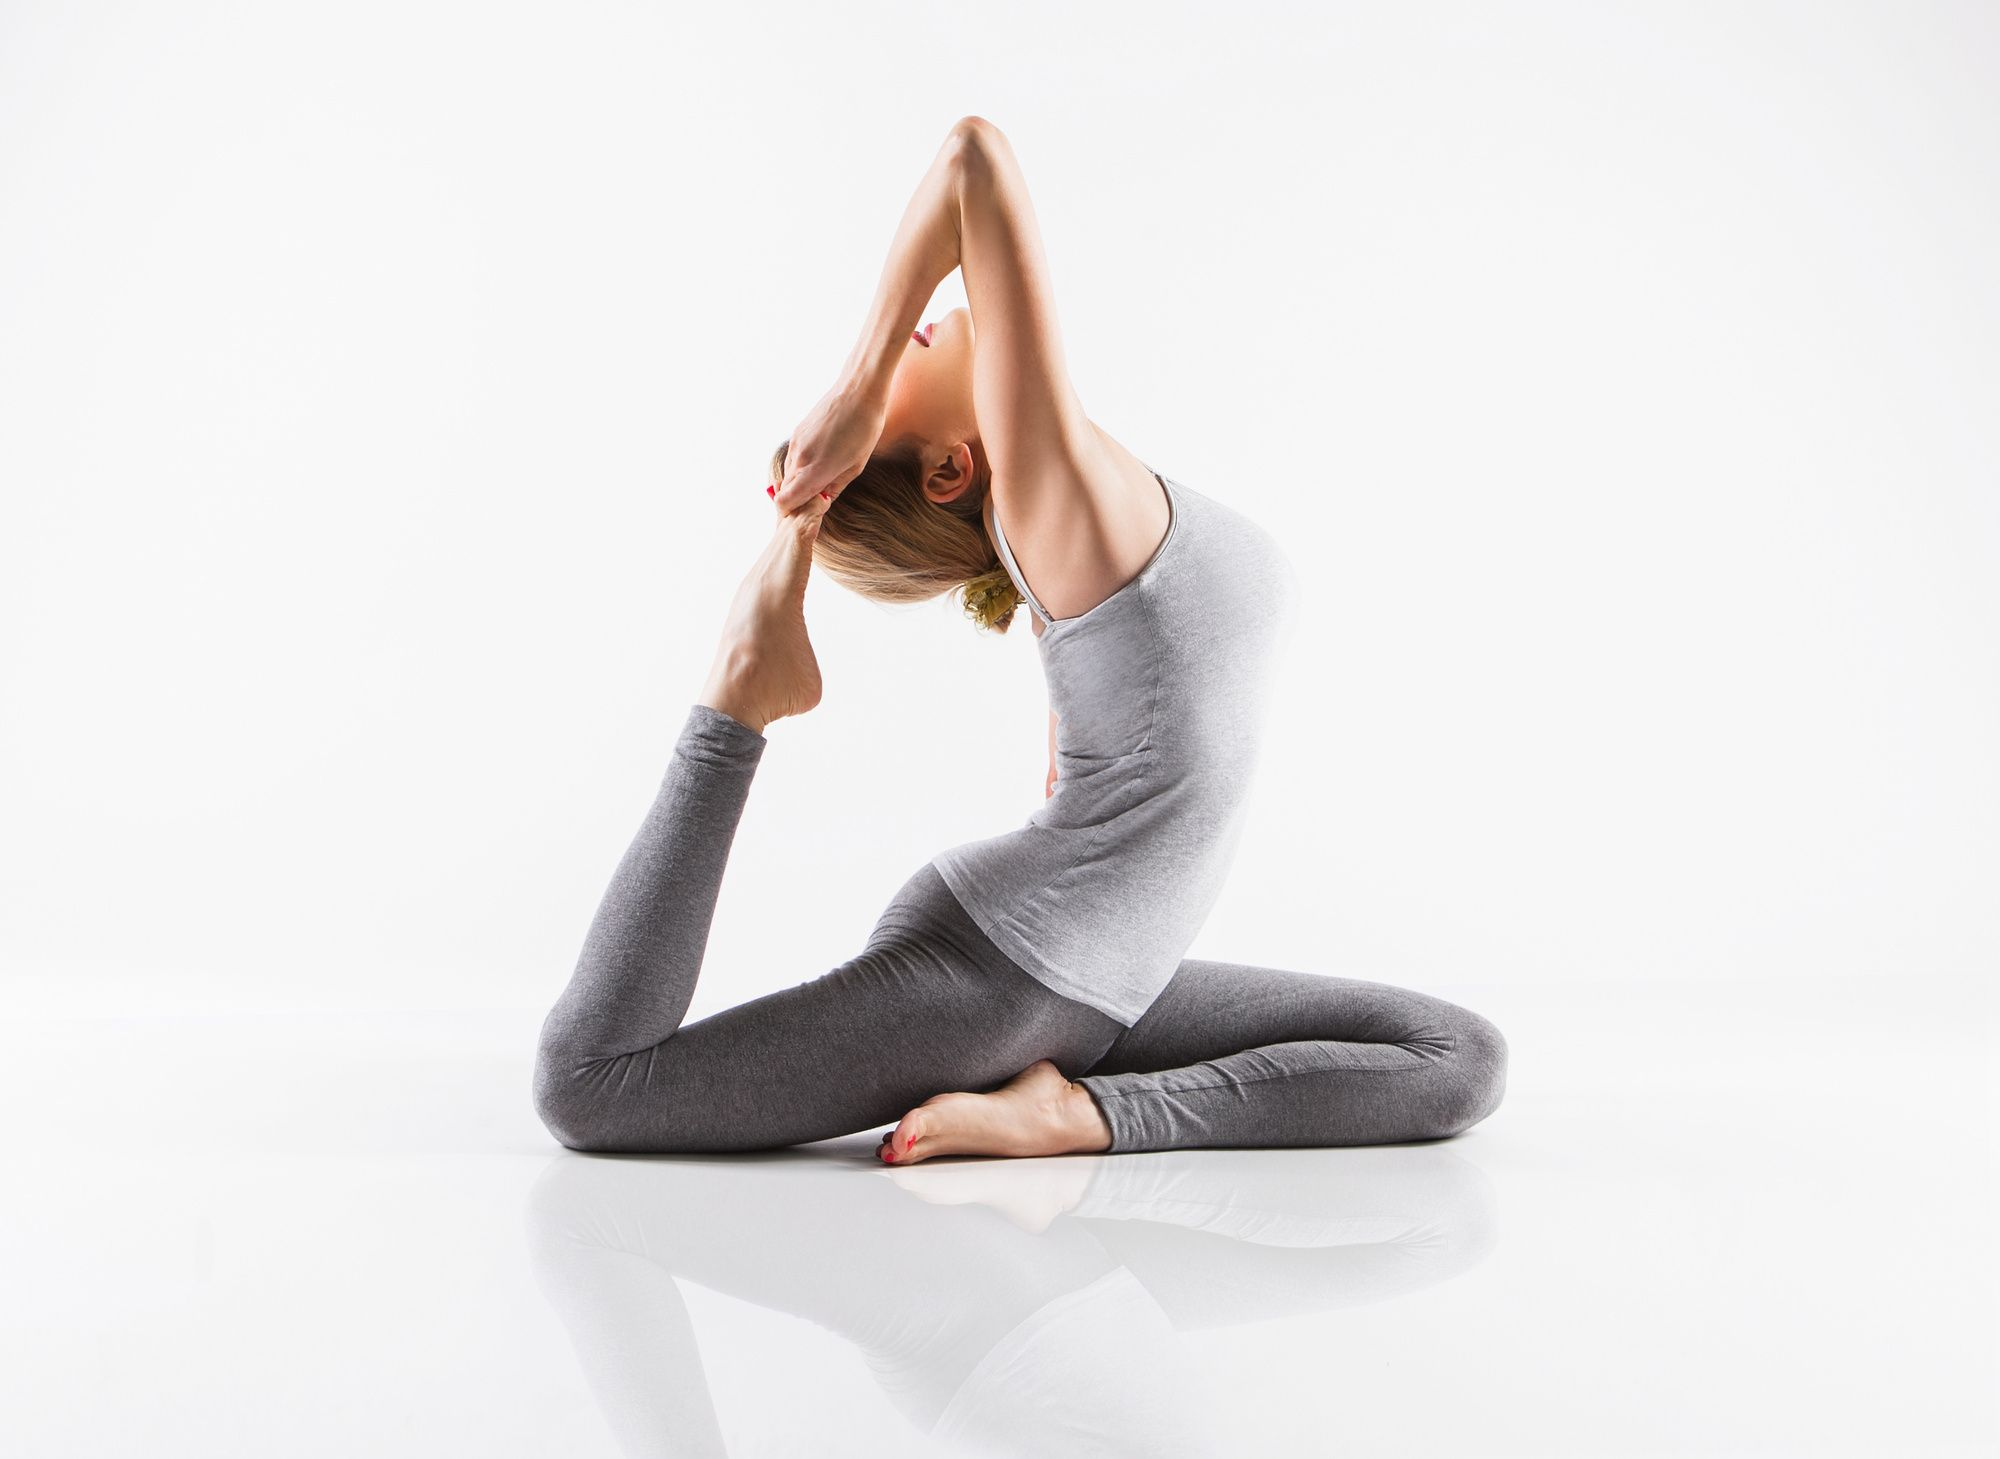 How Yoga Can Help You With Your Scoliosis